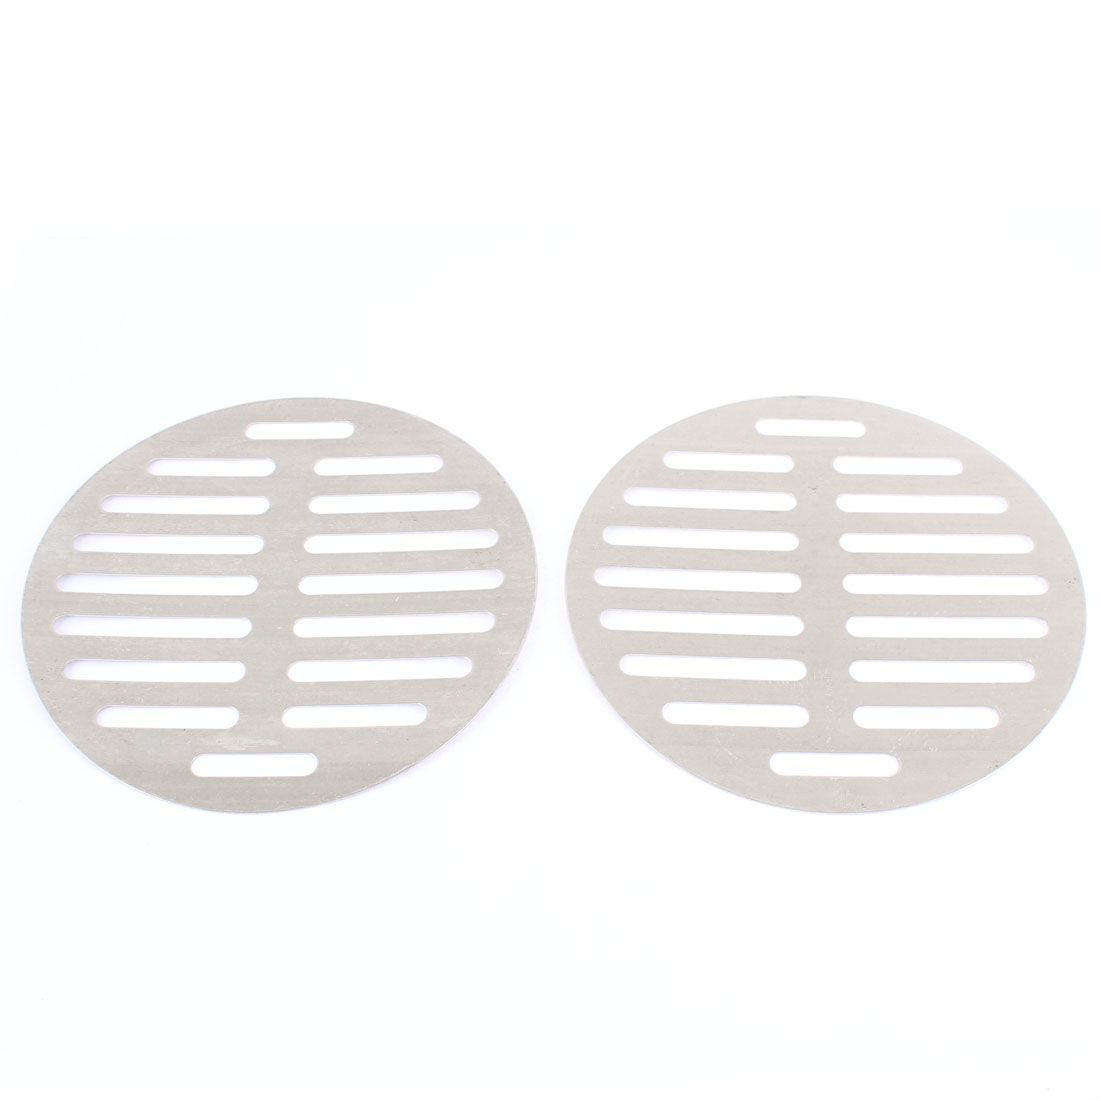 "Kitchen Bathroom Round Floor Drain Drainer Cover 6"" 15cm Dia 2Pcs"